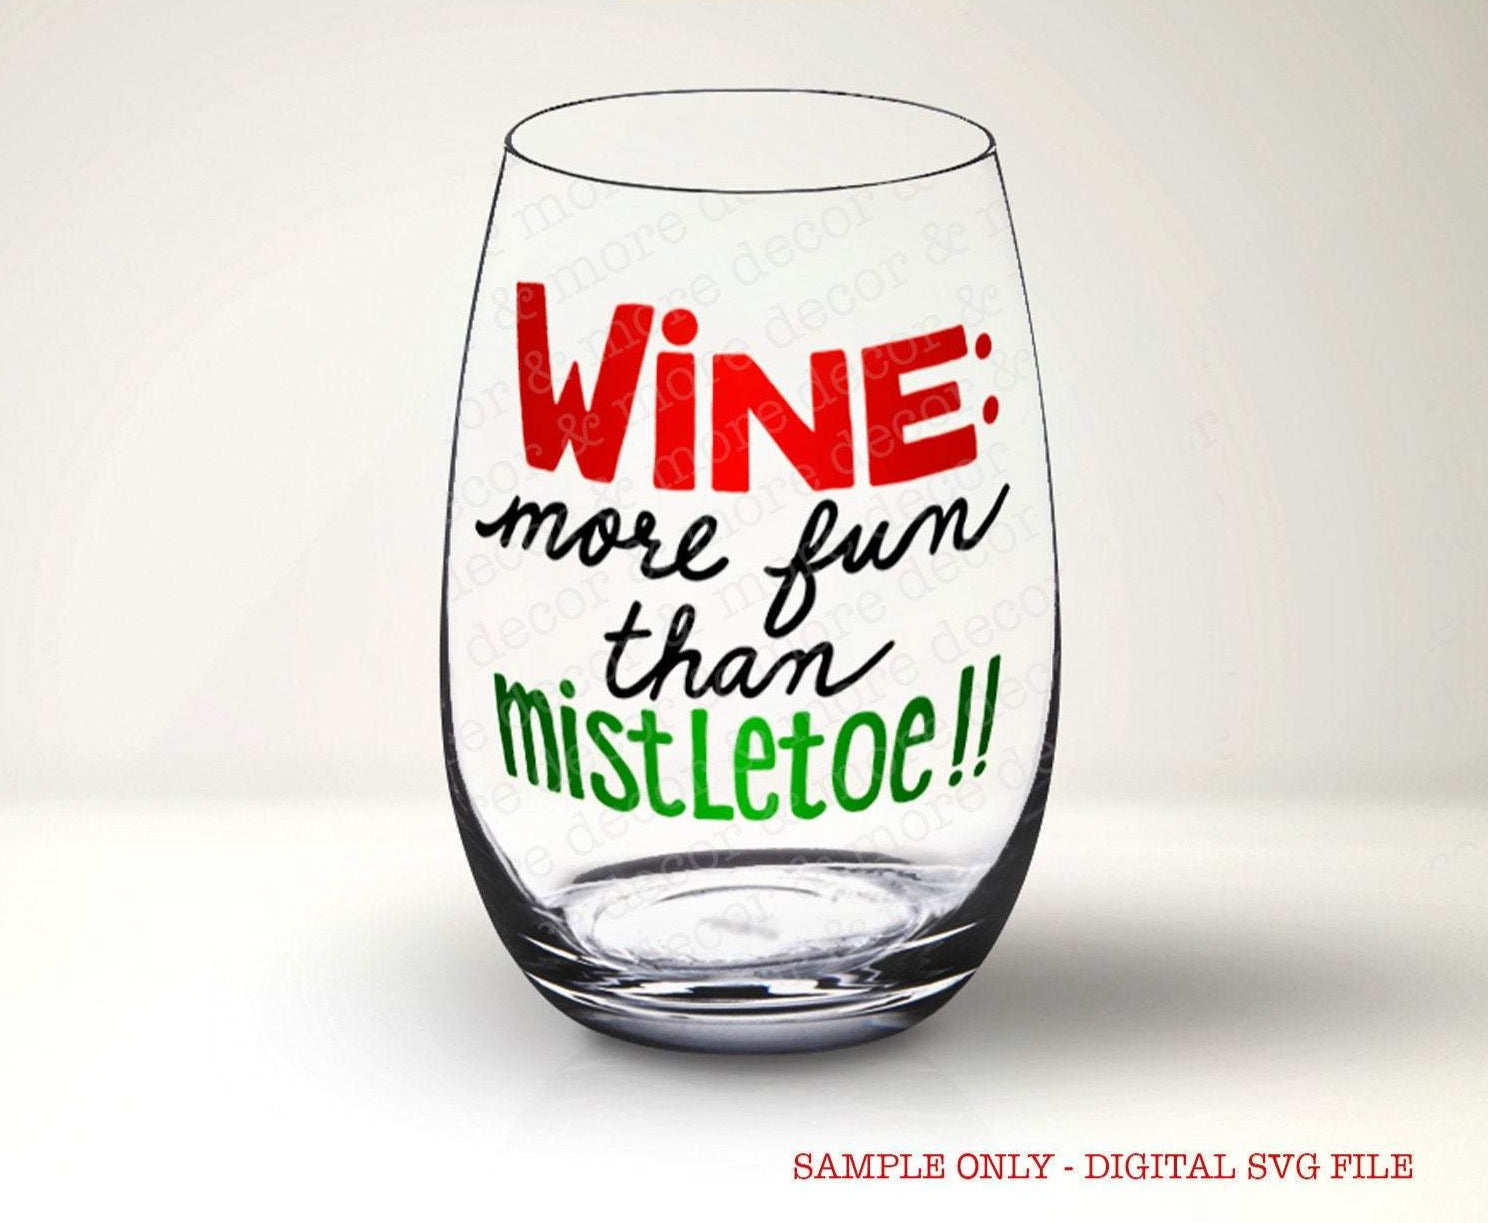 Christmas Wine Glass SVG File, Wine More Fun than Mistletoe SVG, Funny Christmas SVG File